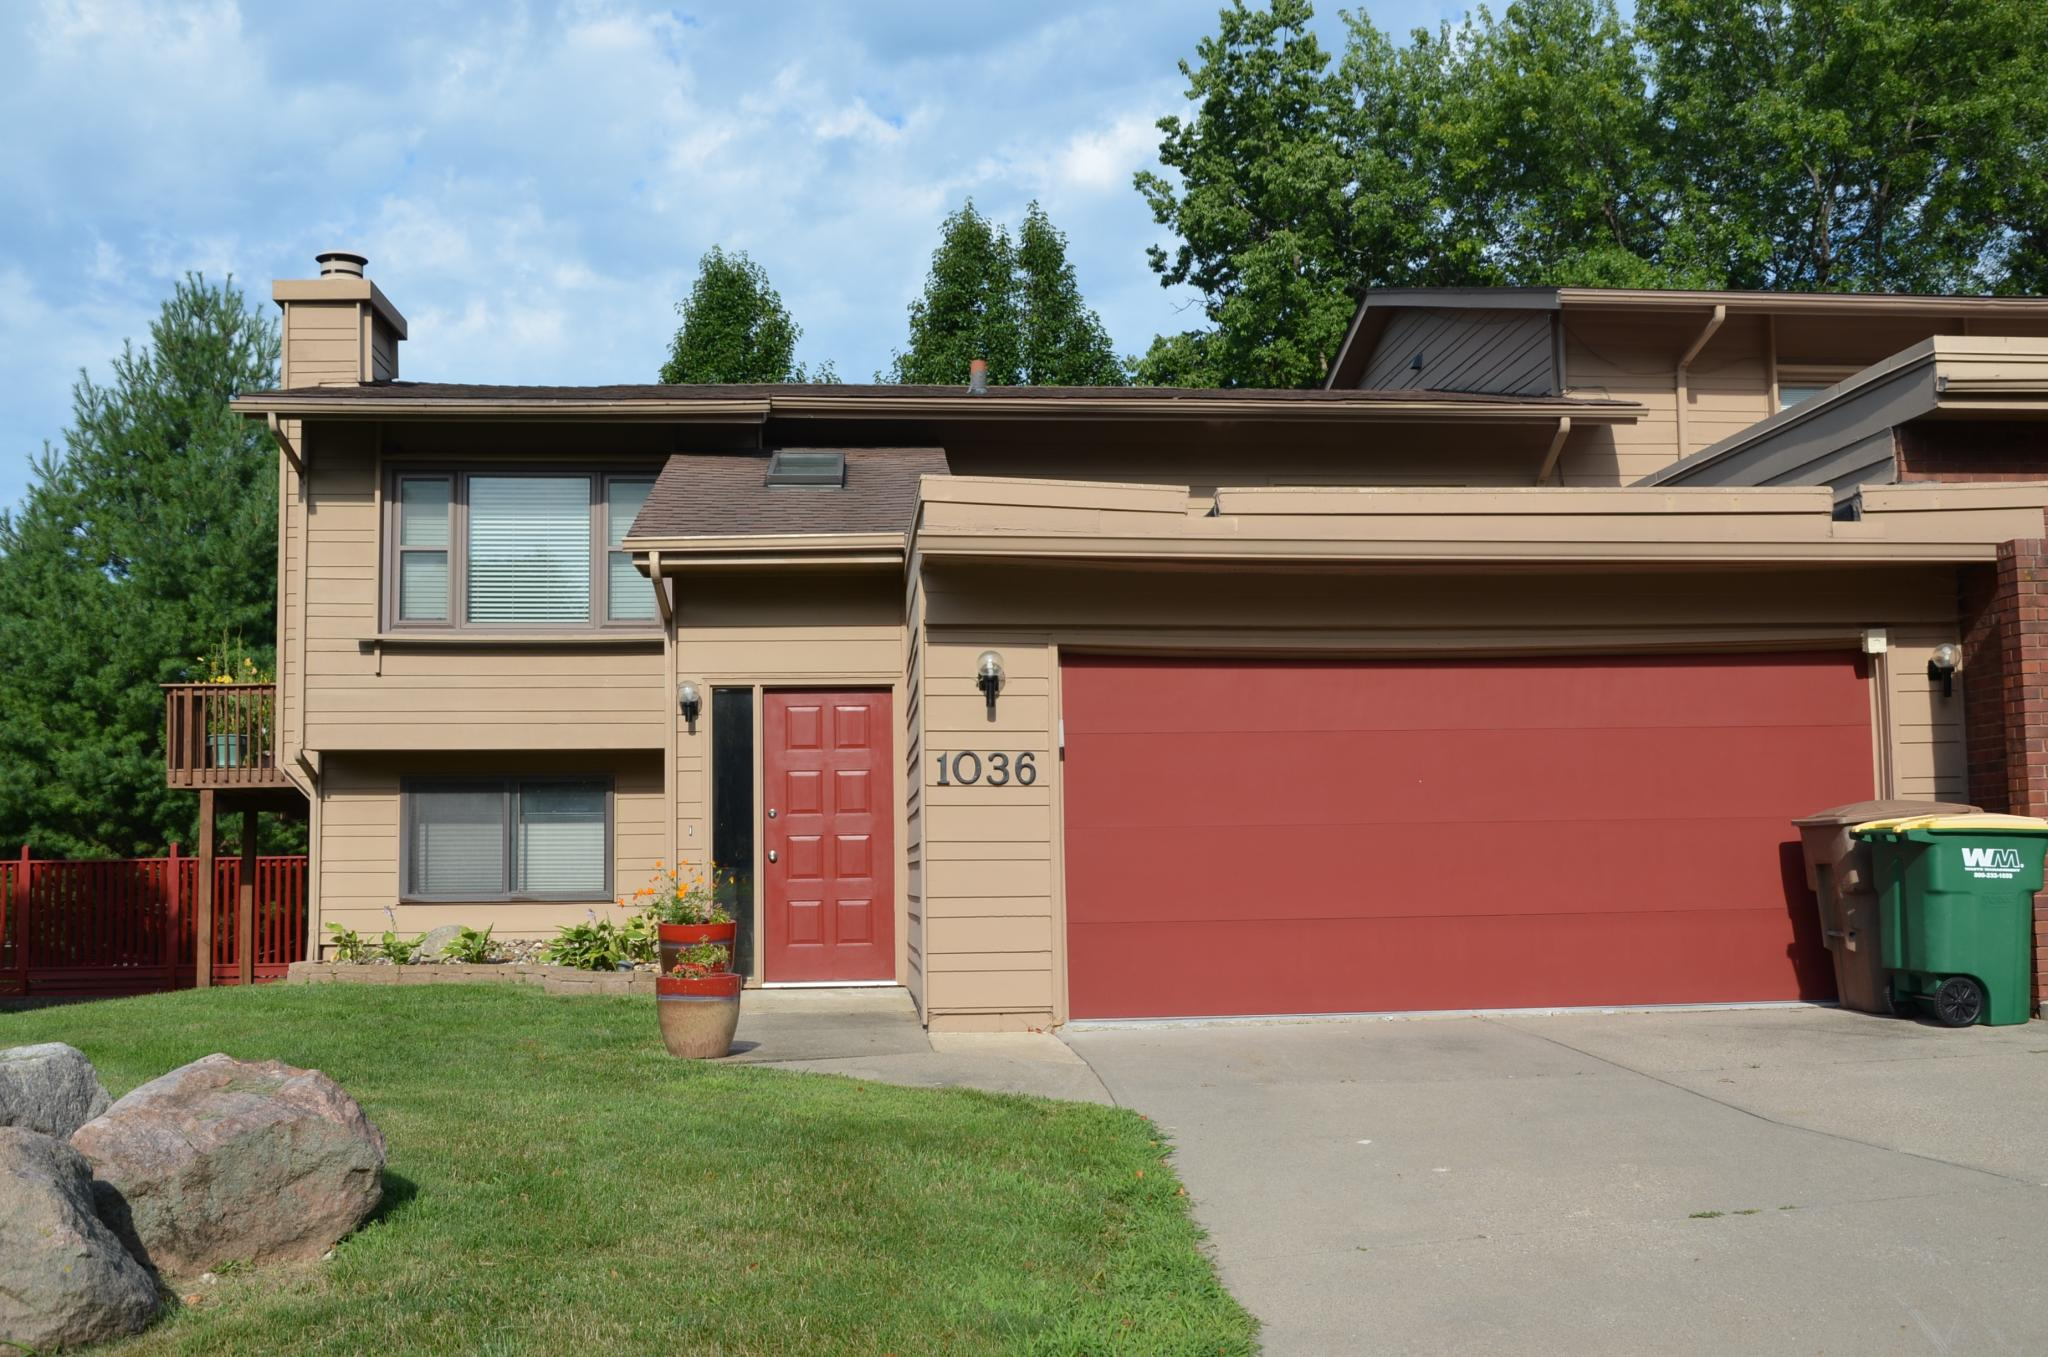 1036 woodland park dr for rent west des moines ia trulia